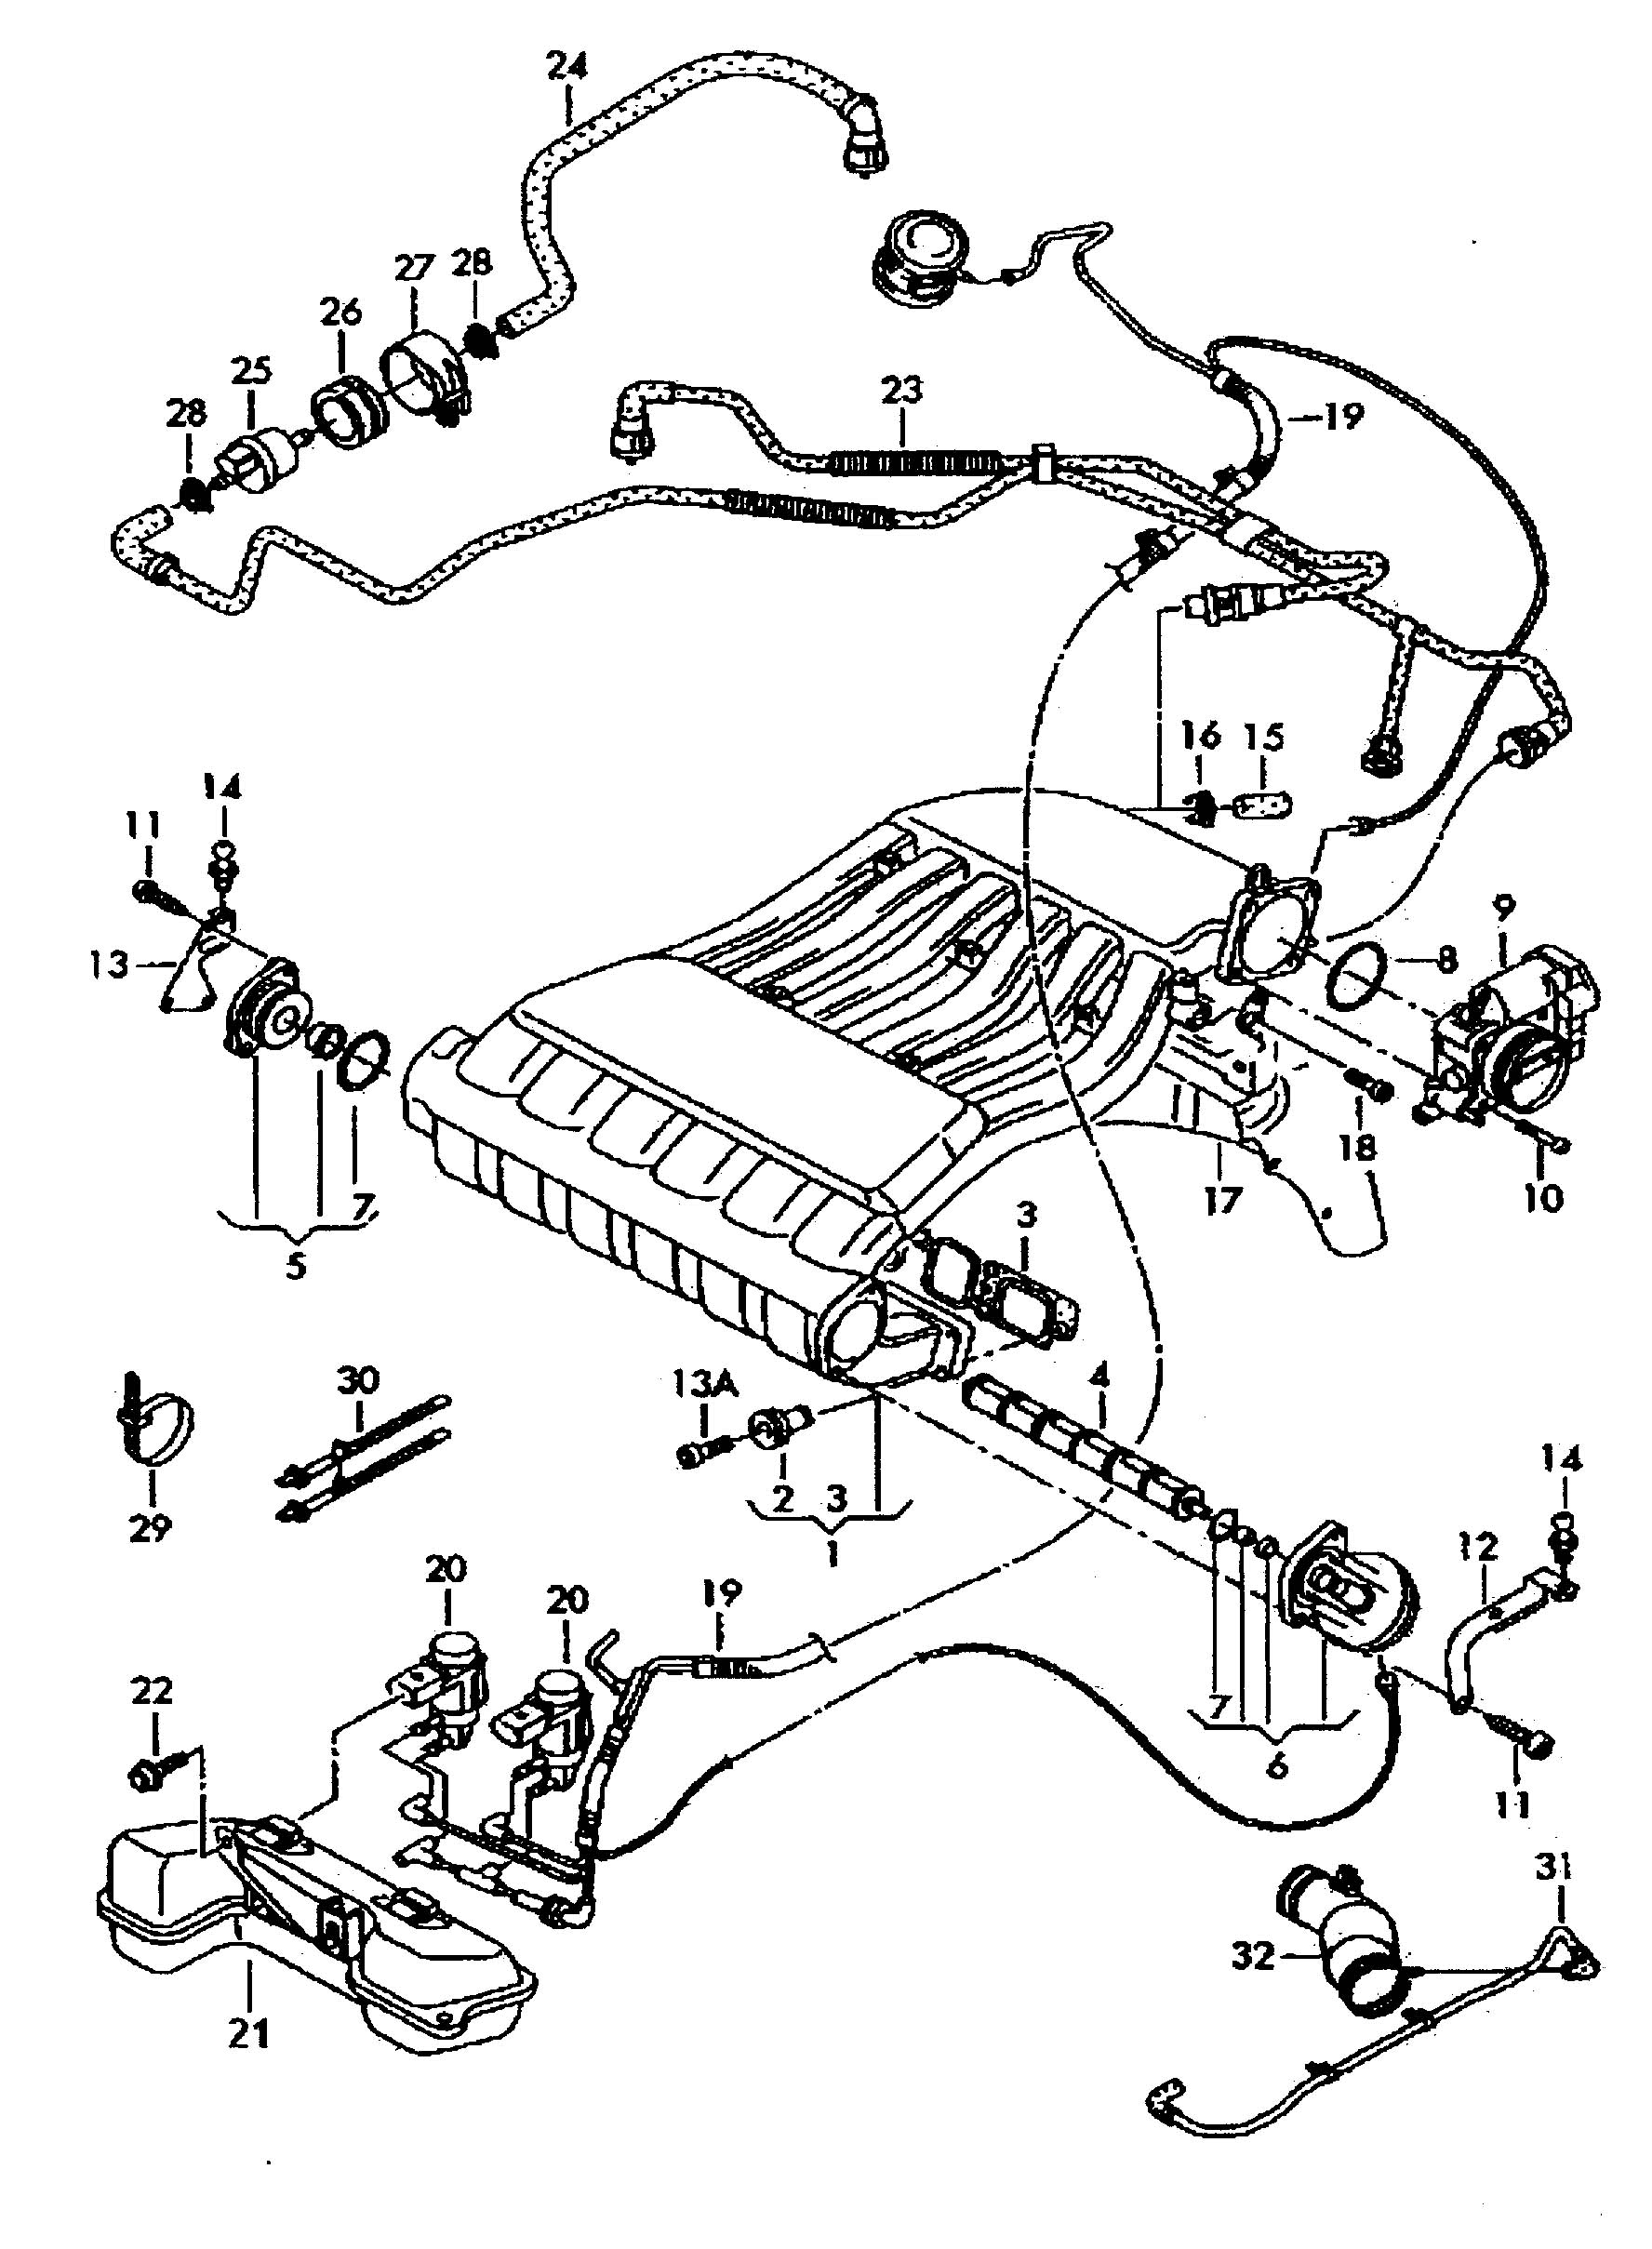 hight resolution of 24v vr6 jetta engine diagram wiring diagram yer 24v vr6 engine diagram 24v vr6 engine diagram